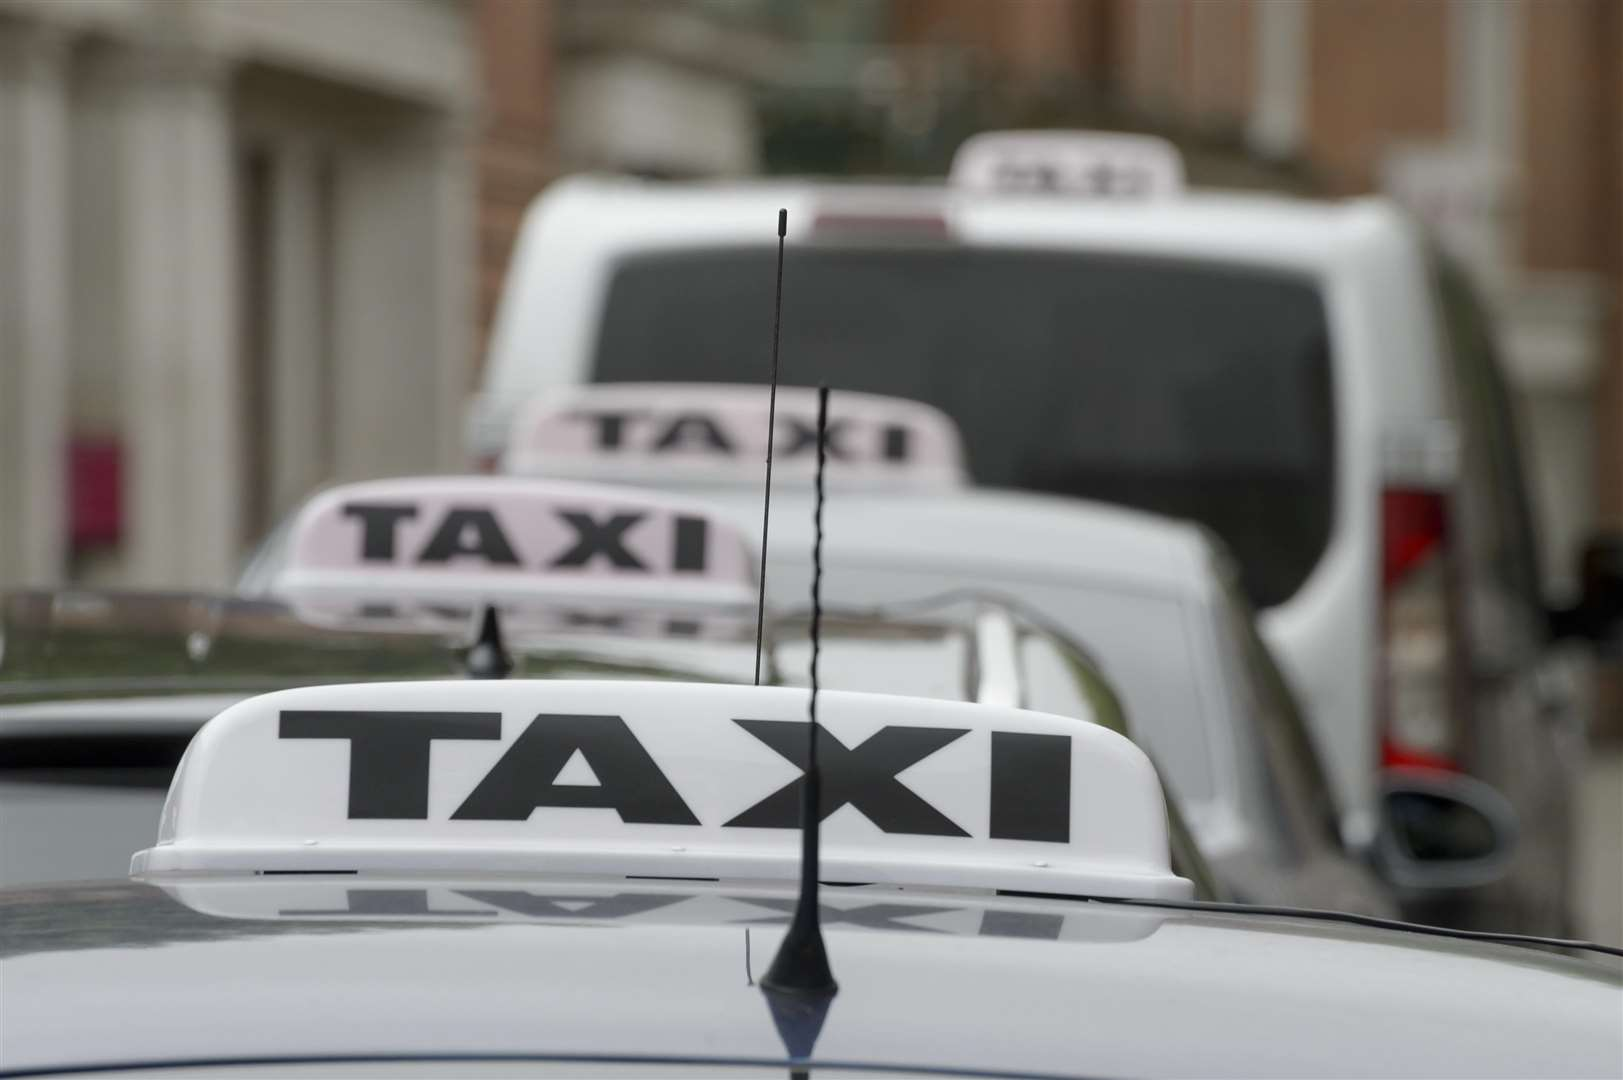 £22.7m out of its total £24.9m on private hire vehicles